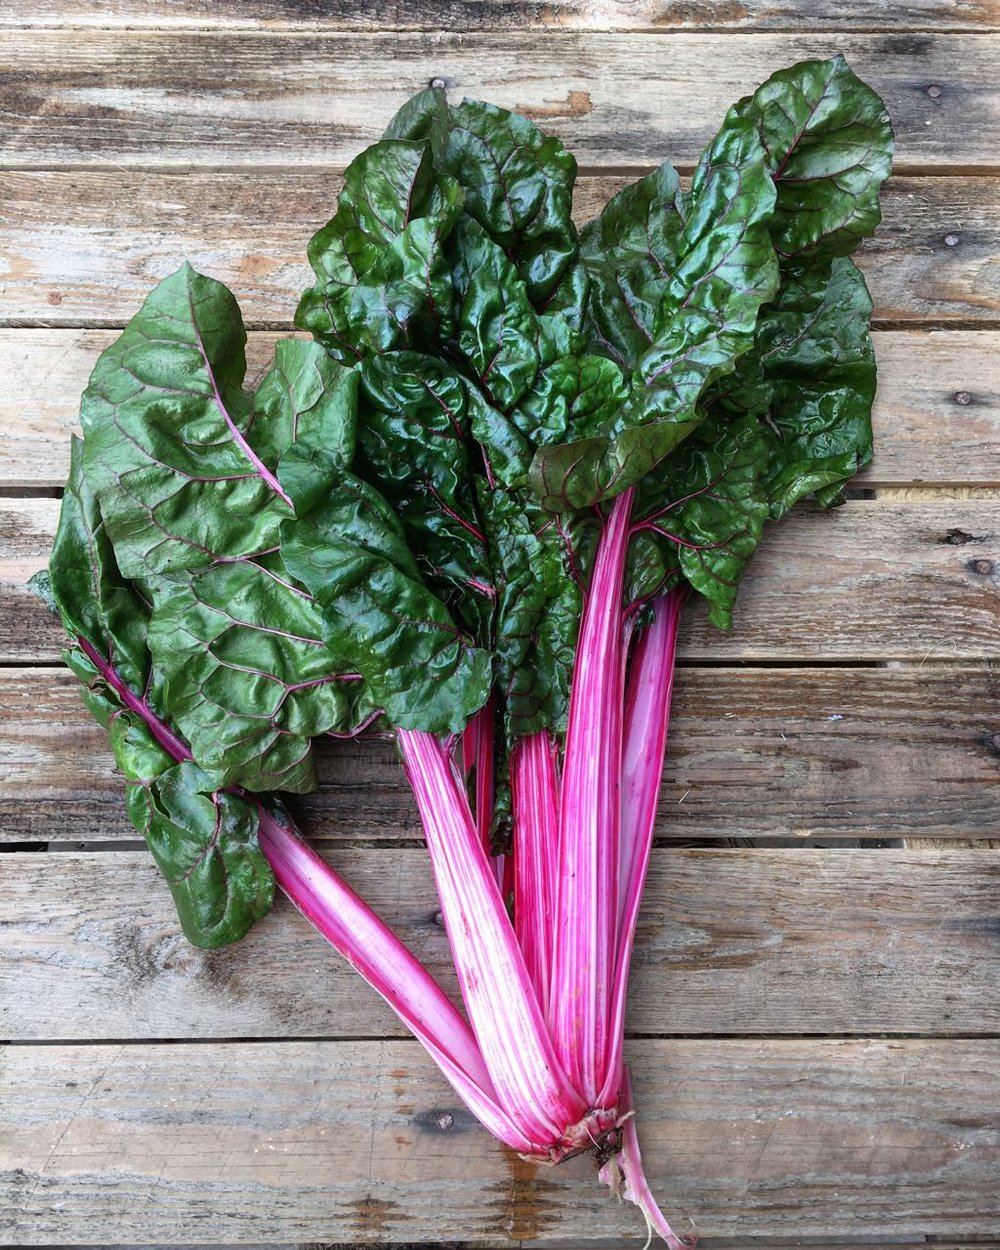 Rainbow Chard    Photo ©Evie Saffron Strands    Chard    Chard  comes in several guises.  The mighty ivory-stemmed, deep-green leaved Swiss Chard needs to have its leaves and stems cooked separately to cope with the very different textures of each.  The altogether finer golden-stemmed or ruby-red forms and multi-coloured Rainbow Chards whose stalks can grow cream, yellow, orange, pink or crimson can, unless very large, be cooked together.  But if you prefer a soft texture rather than a little contrasting crunch, cook the stalks for a couple of minutes before adding the leaves.  Chard is a member of the Beet family, but of a kind that has been selected for its leaves rather than its root.  The colourfulness of chard's stalks and leaf ribs is due to the same betain pigments being present in them as occur in equally colourful beetroots.  Chard is also a distant relative of spinach so its leaves can be treated similarly, though it has a more earthy flavour.    Picked very small, Chard is a tasty and colourful addition to the salad bowl.  Thick stems can be blanched in boiling water for a minute or two, drained and finished in a gratin dish in a medium oven smothered by a cheese sauce and scattered with breadcrumbs.  They are also good chopped and added to a vegetable or bean soup.  The leaves, or the whole of tender stemmed chards, can be boiled like spinach (if in doubt, cook the stems for 2 minutes then add the leaves for a further 2 minutes) before draining well.  At this point you could use the cooked chard as a side dish by adding it to a little olive oil that has been warmed in a pan then serve with a squeeze of lemon.  Chopped after boiling it makes a good filling for a creamy quiche or tart, an Italian Frittata or Spanish Tortilla.  It also makes a good base for 'Eggs Florentine' in place of spinach.    We've been buying great quality Organic British-grown chard for several months now but as we move towards the end of November the crop growth slows and supplies will shift to chards grown in kinder European climates.